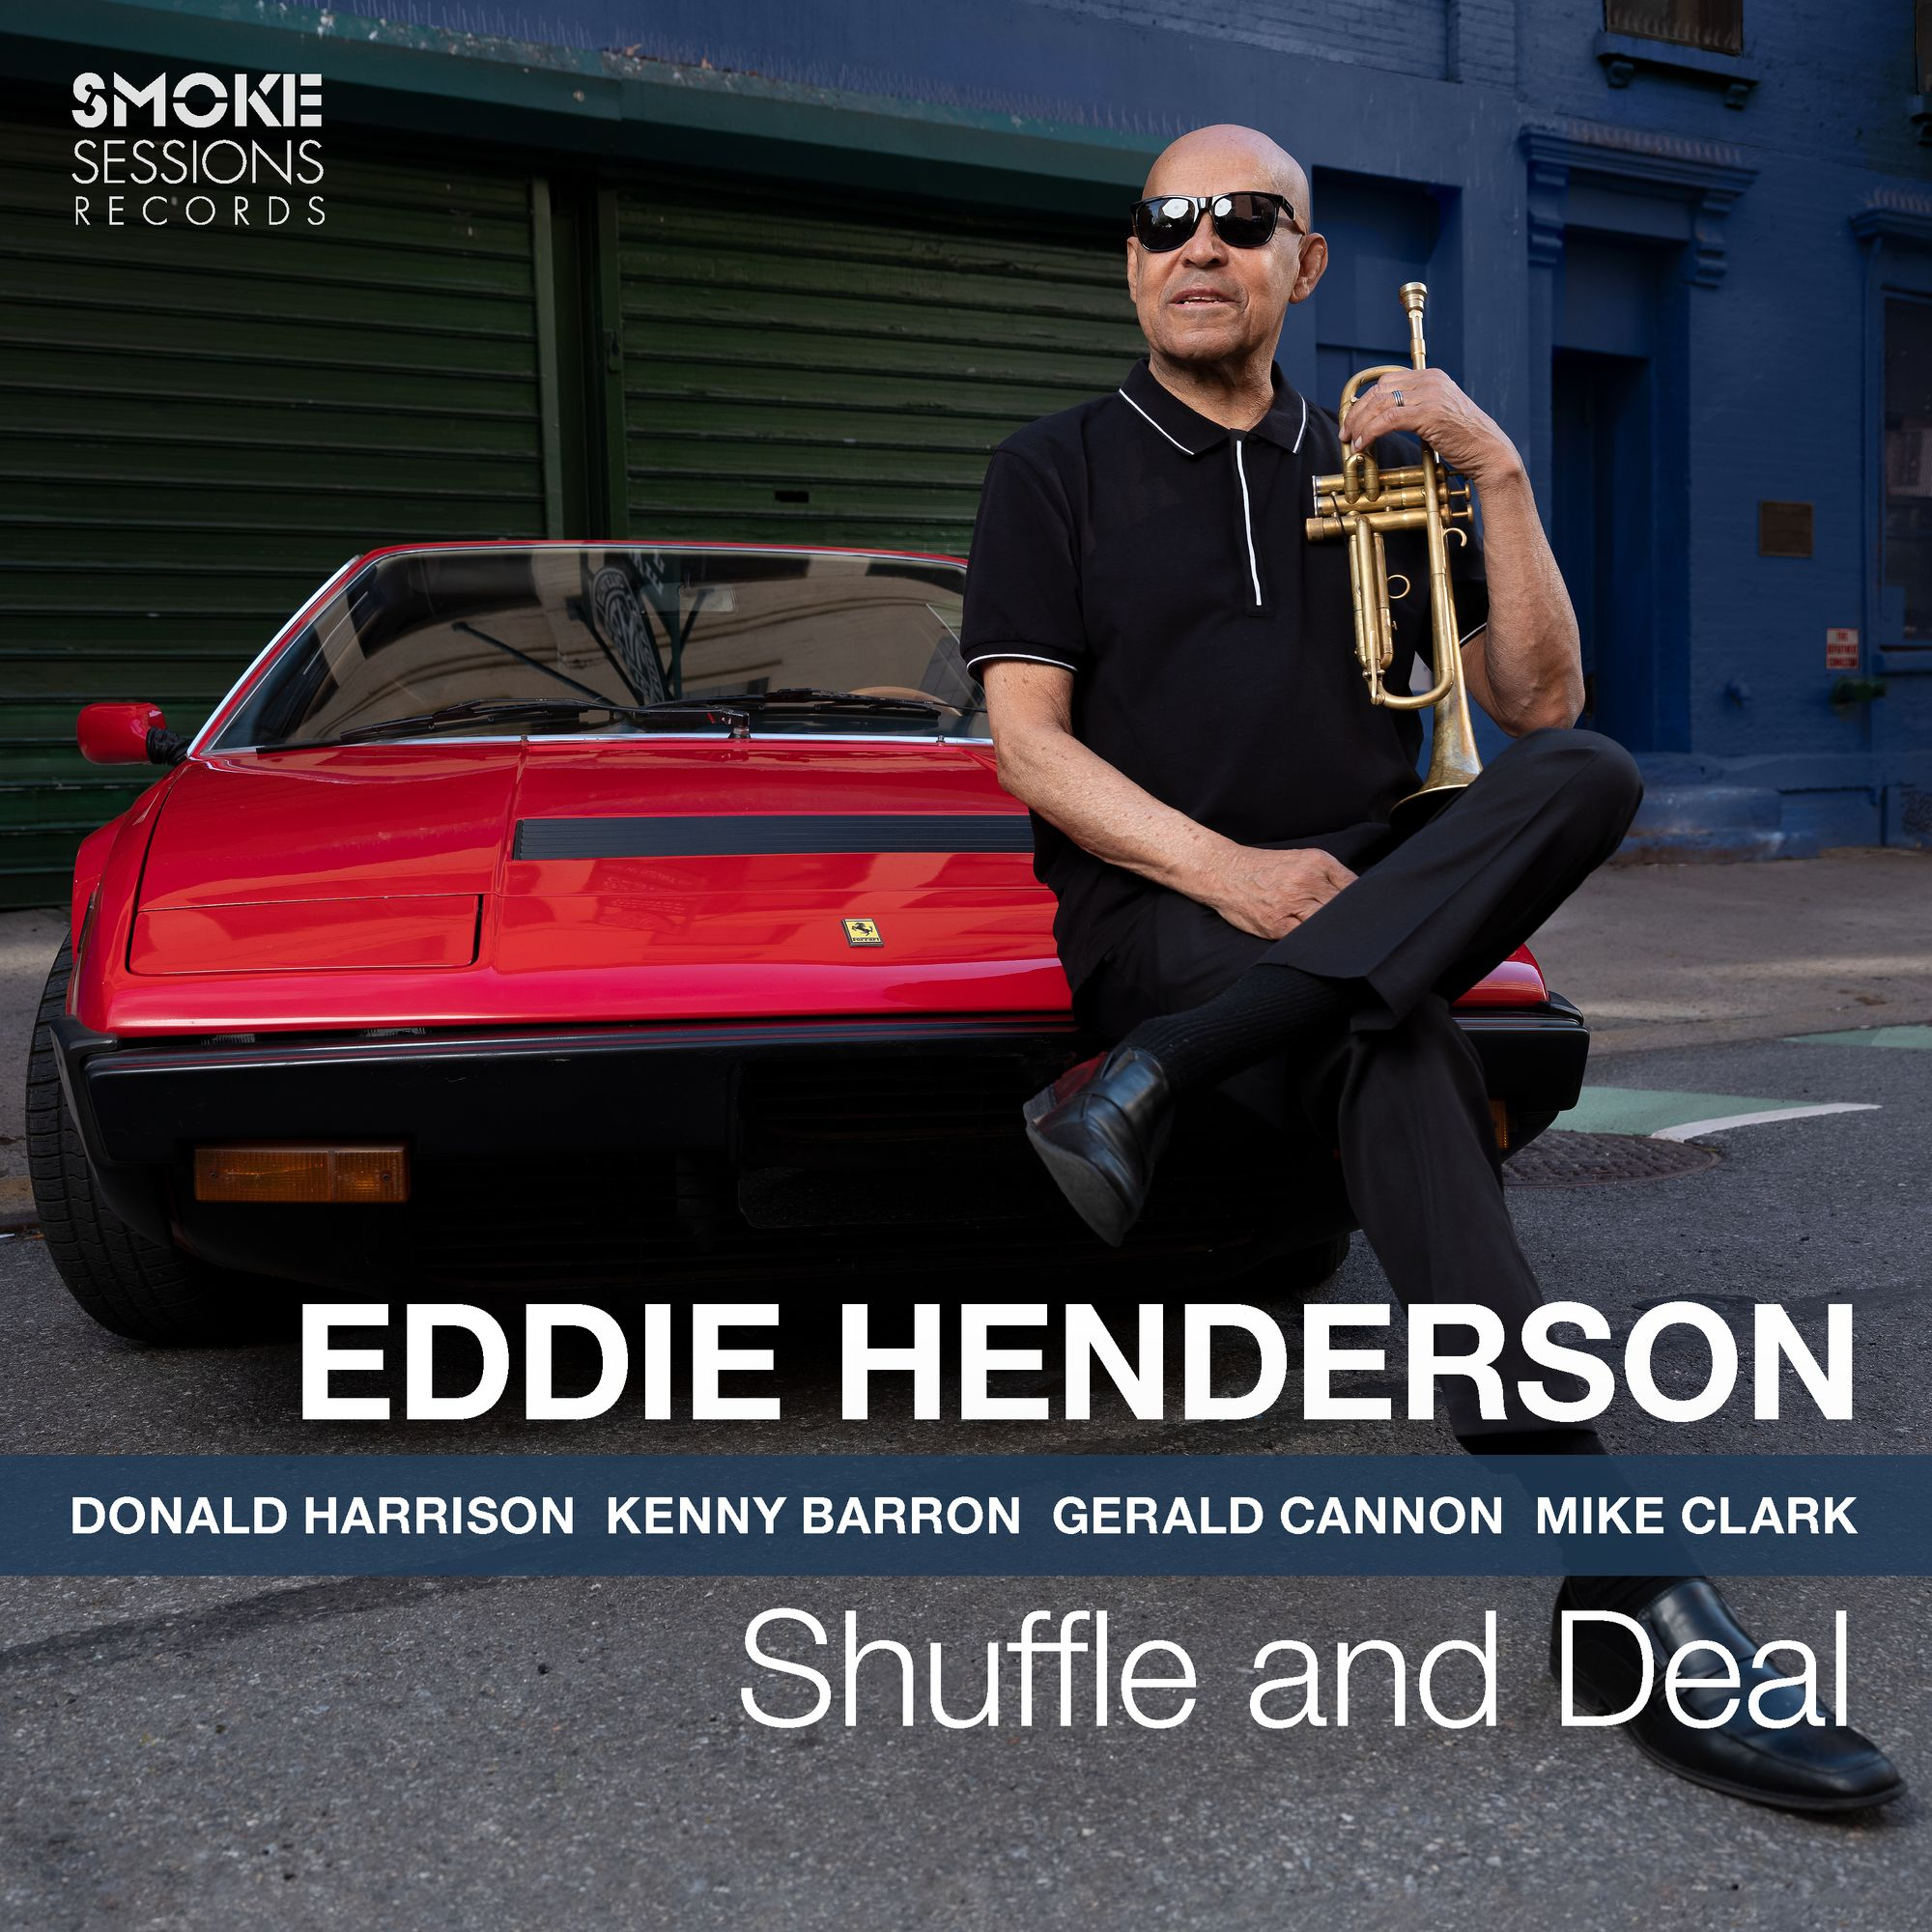 EDDIE HENDERSON - Shuffle and Deal cover